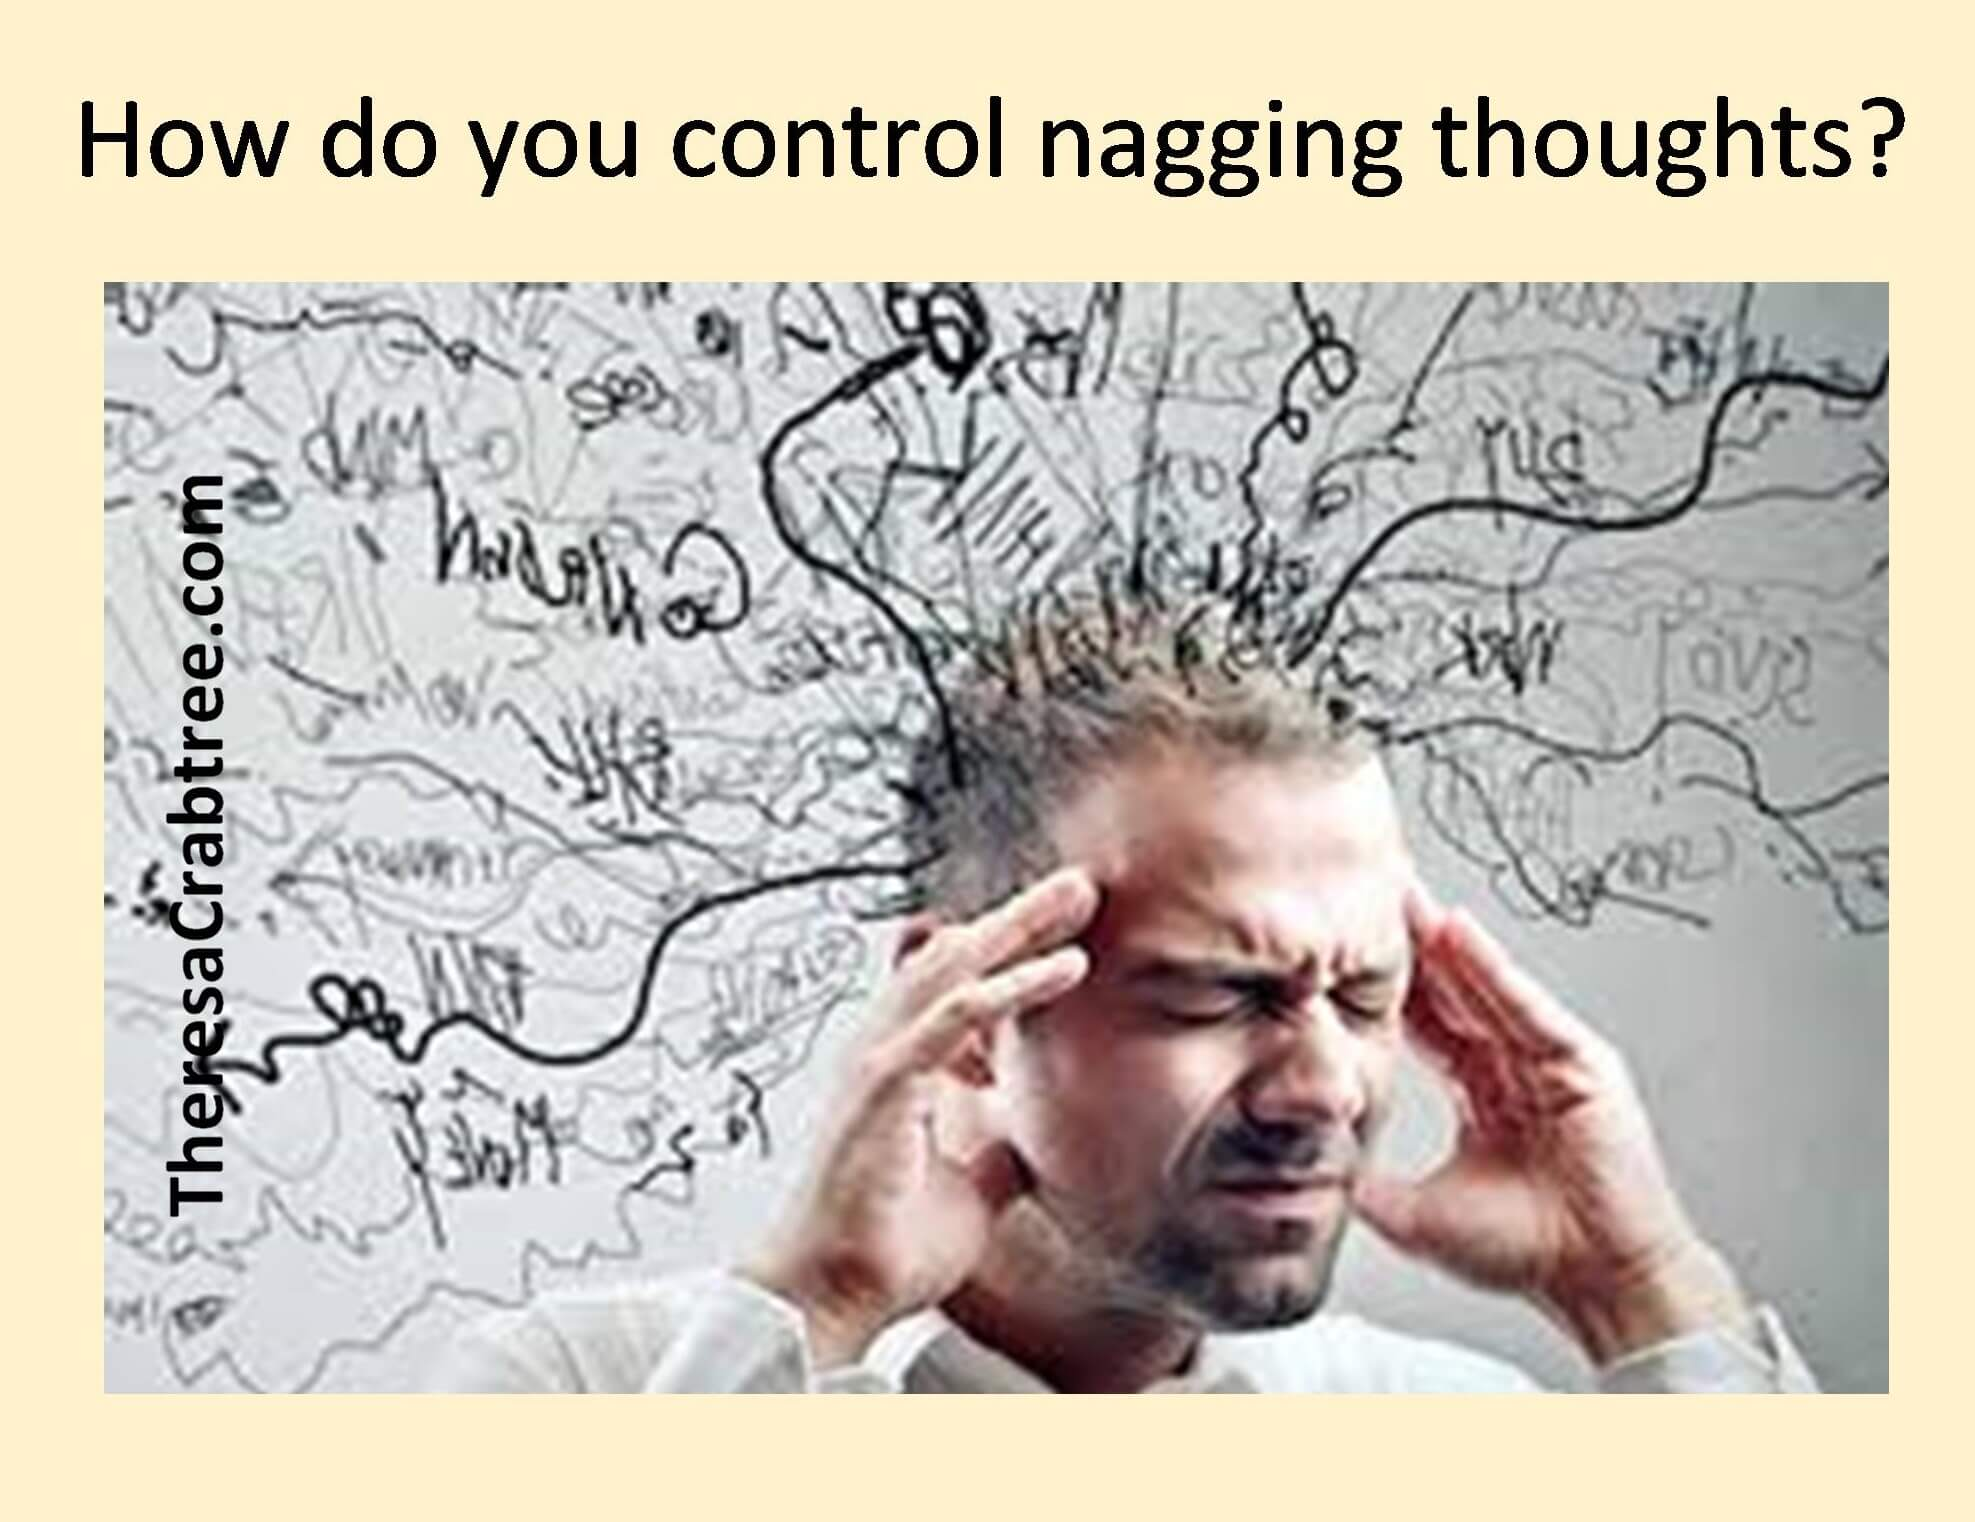 How do you control nagging thoughts?